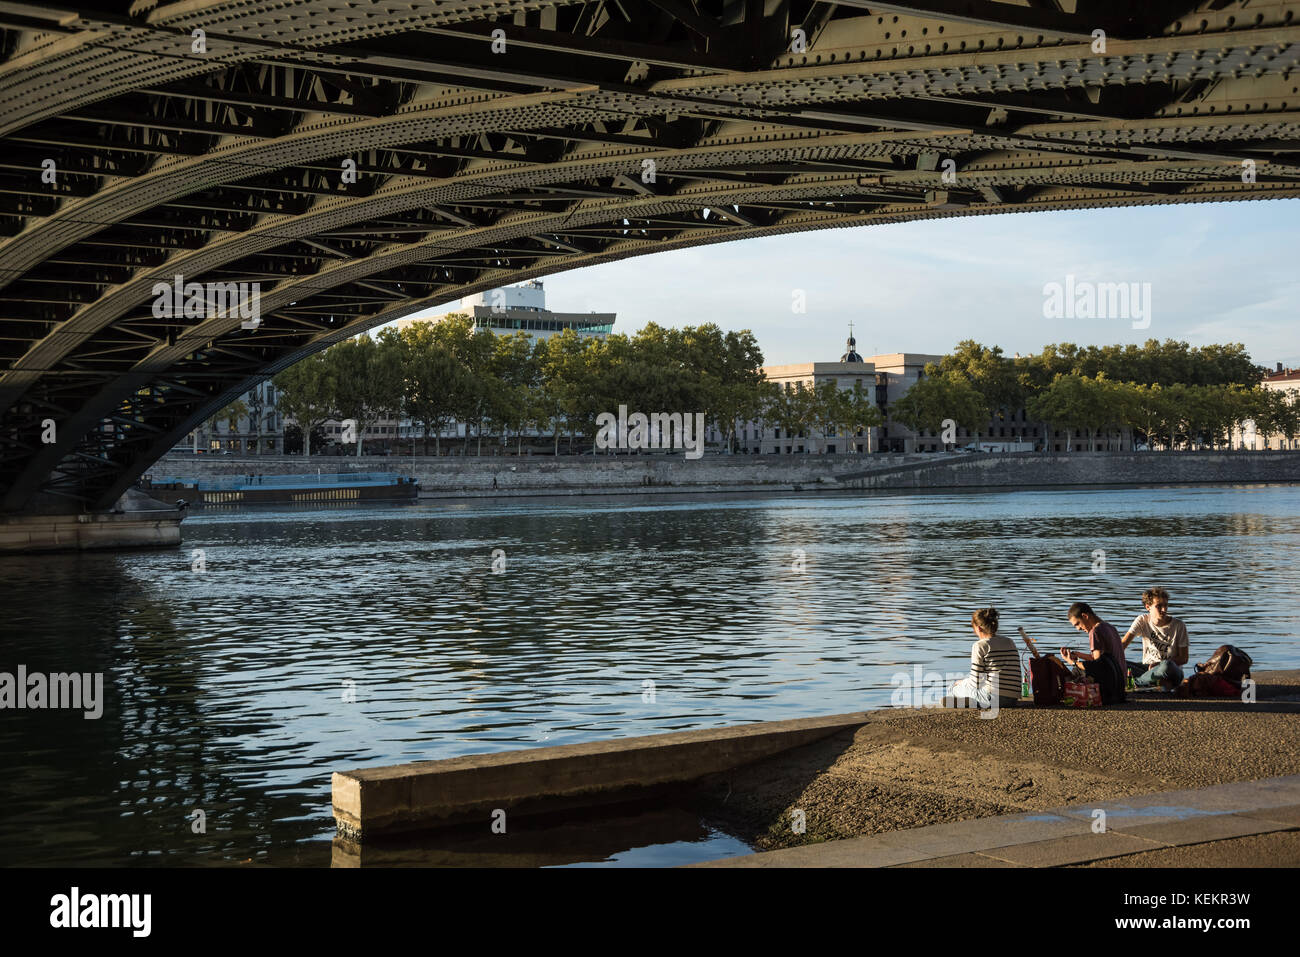 Lyon, Pont de l'Universite Stockbild